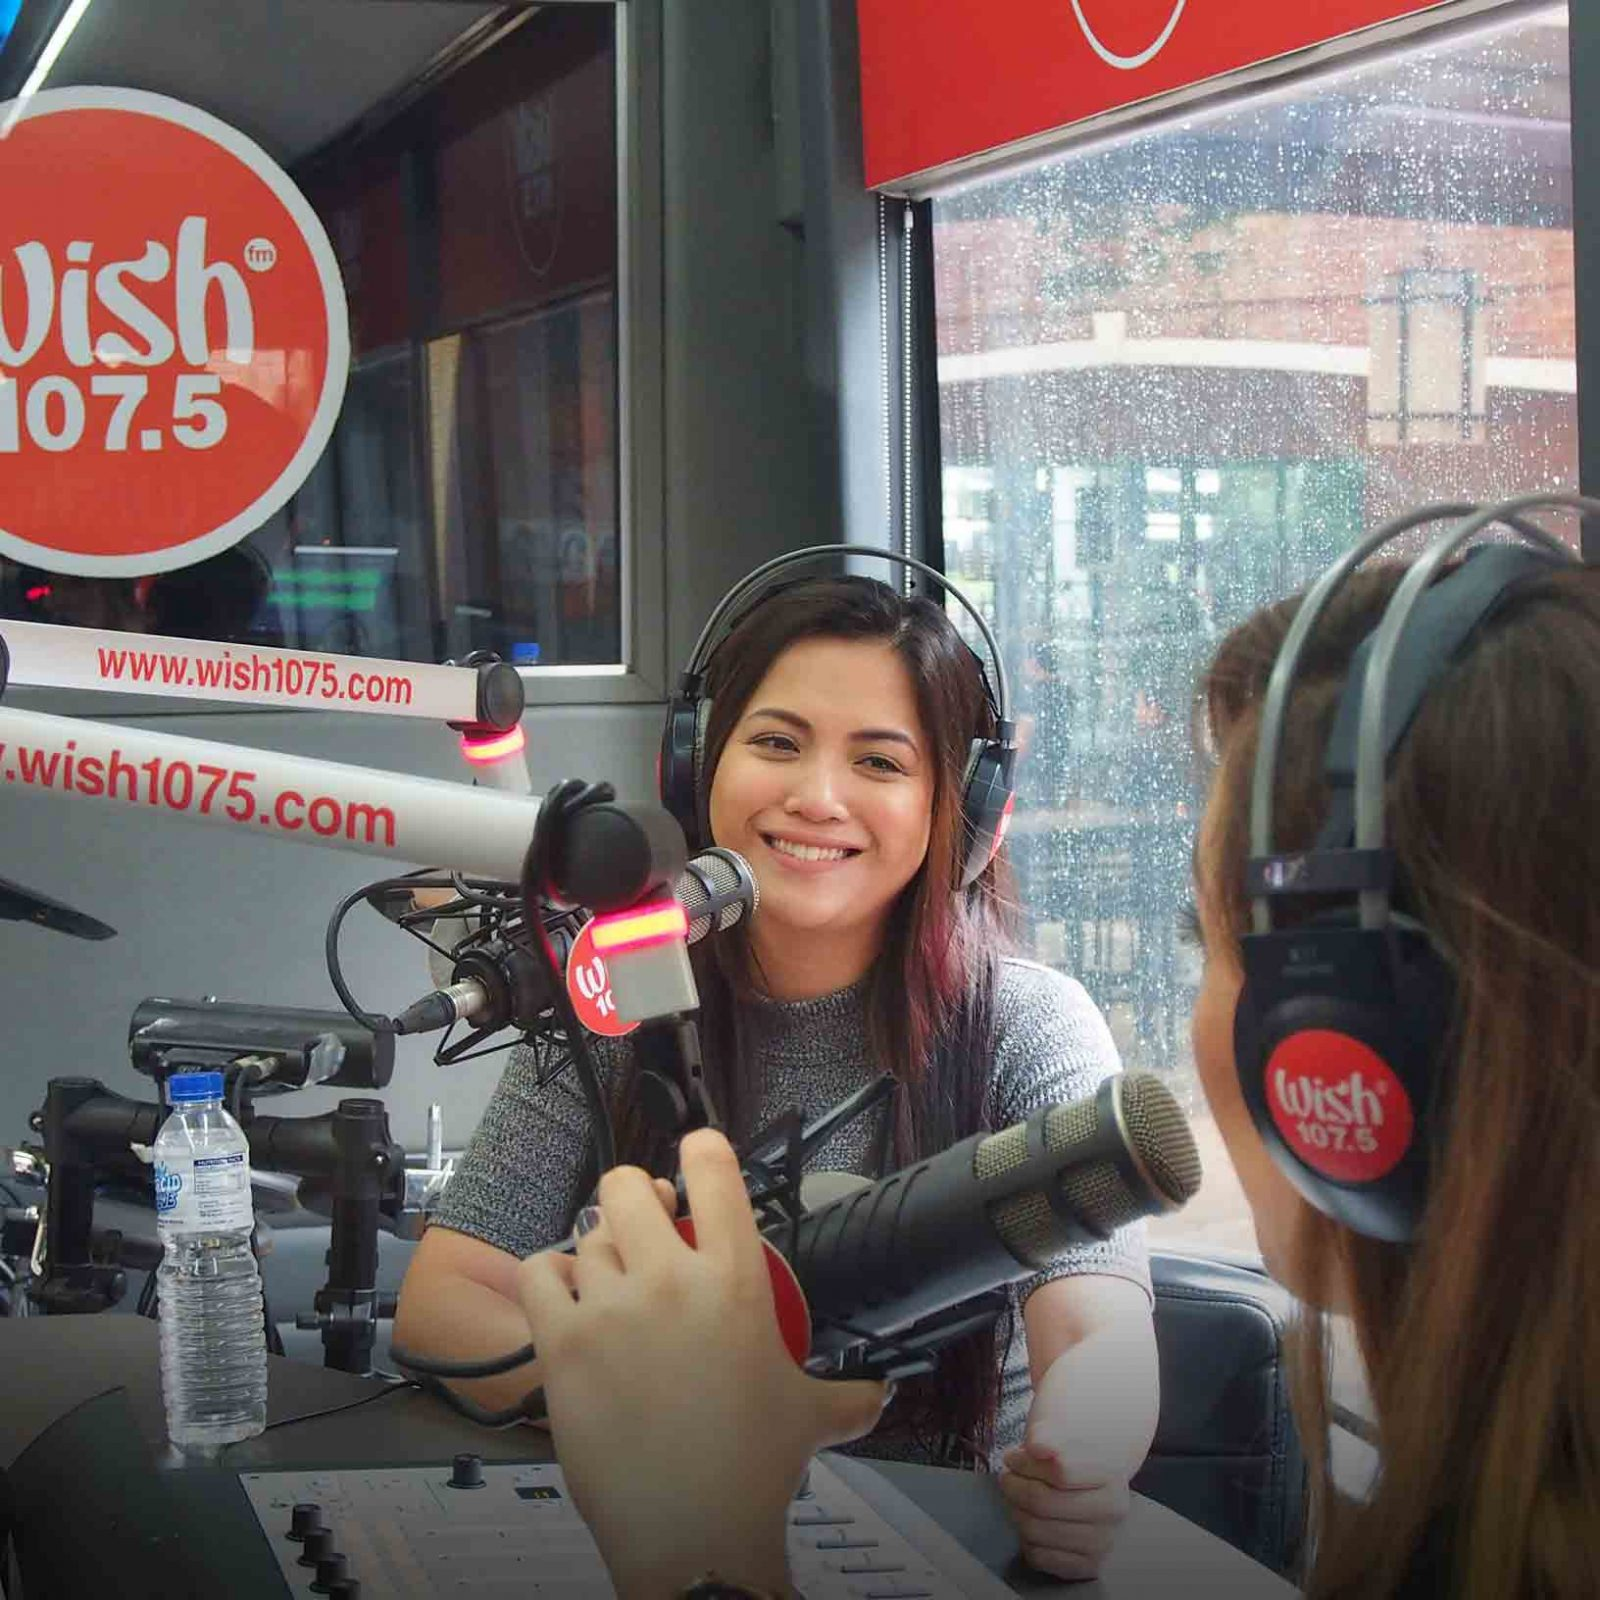 Versatile performer Janelle Jamer kicks off Wish 107.5's third-anniversary celebration and answers some fun and engaging questions from DJ Alice of the radio show The Wonderland.   (Photo courtesy of Photoville International)